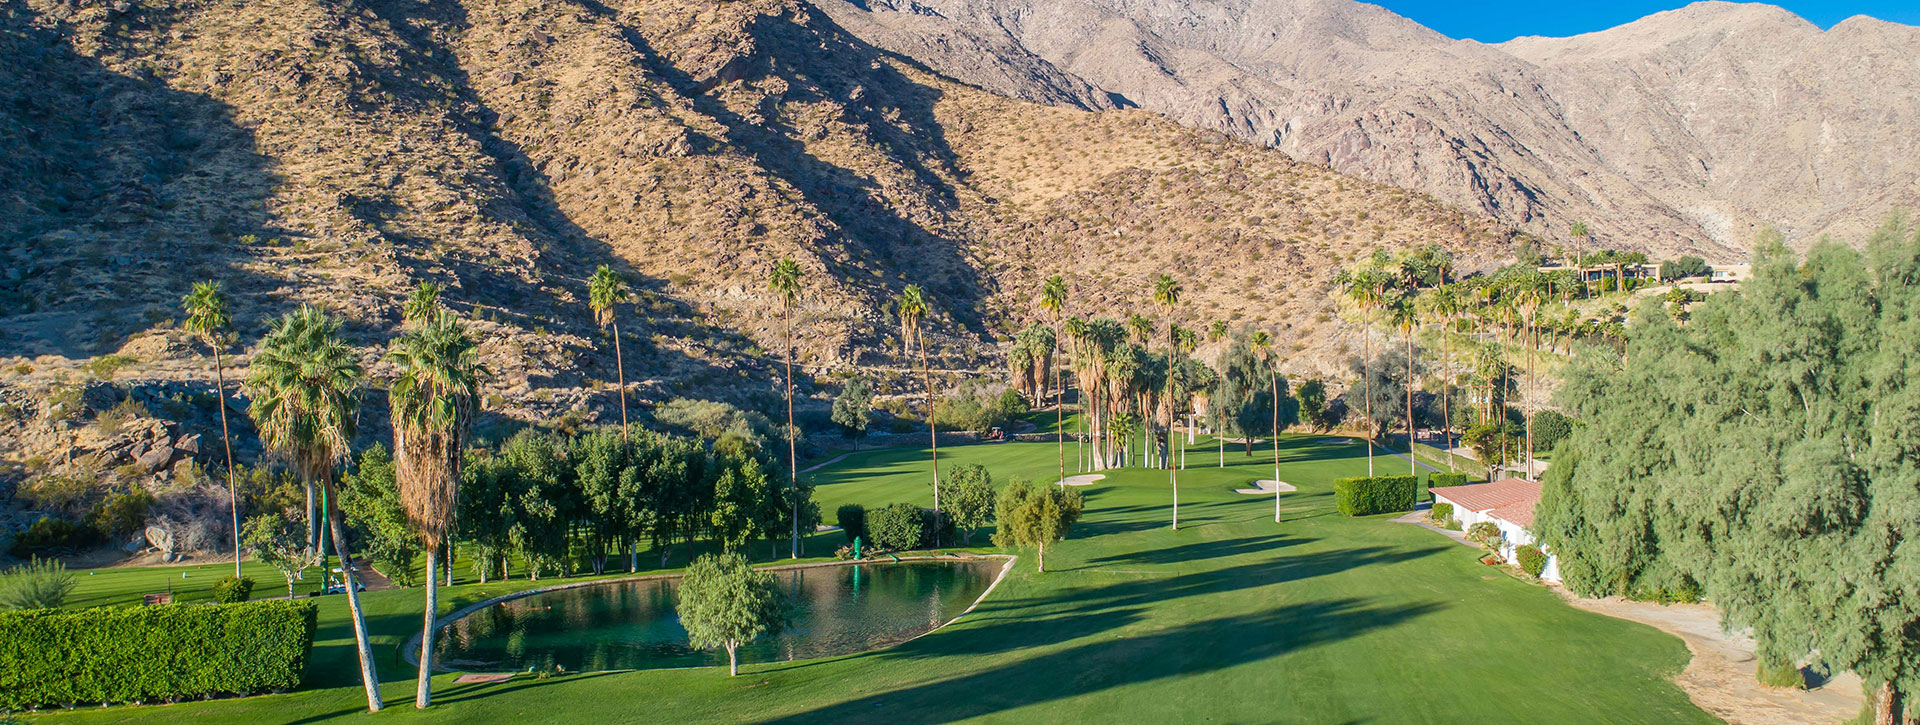 O'Donnell Golf Club Palm Springs CA